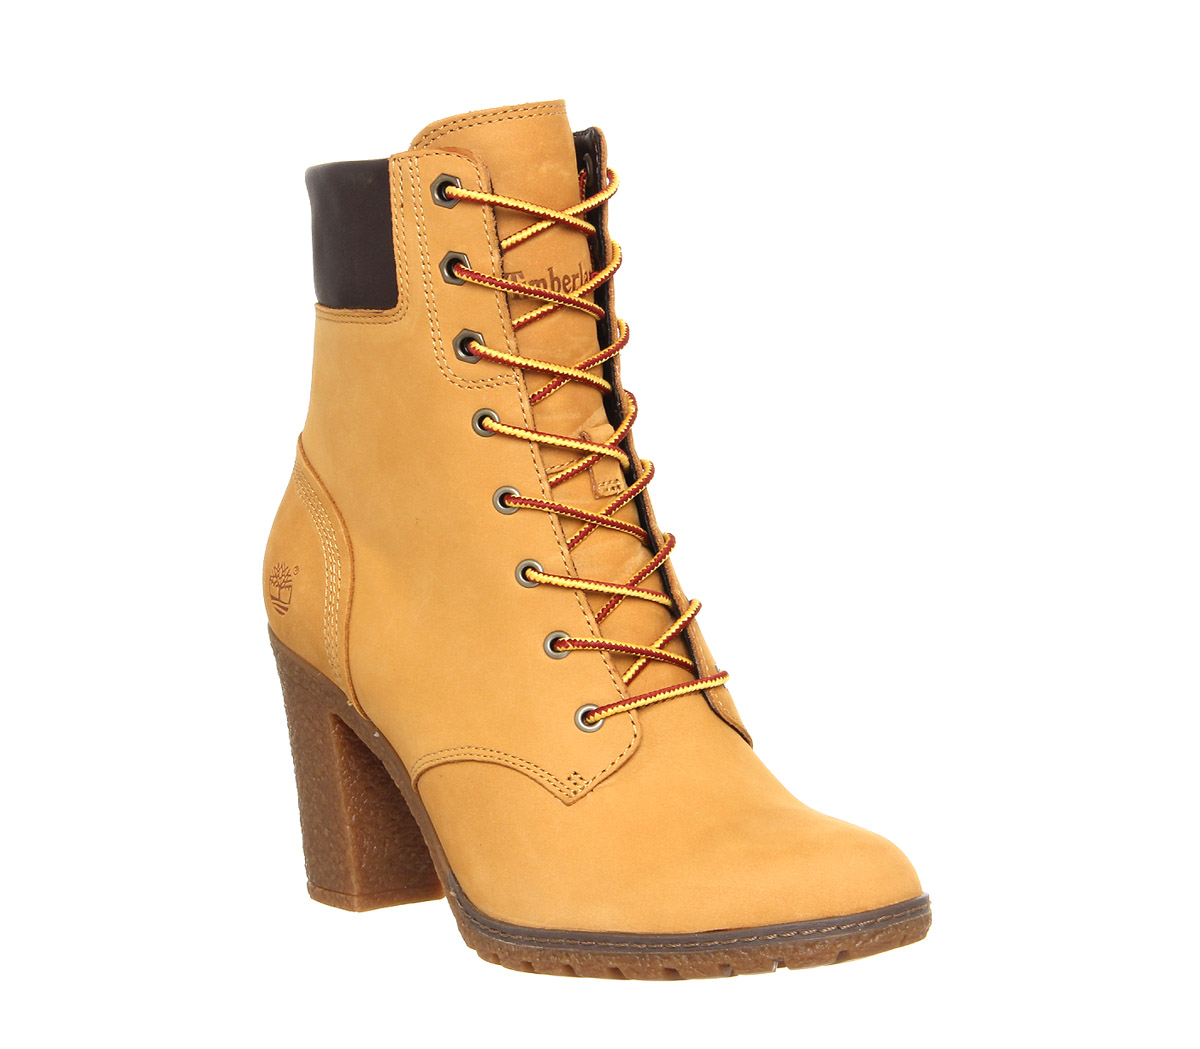 Light Blue Timberland Boots | Colored Timberlands | Cheap Womens Timberland Boots